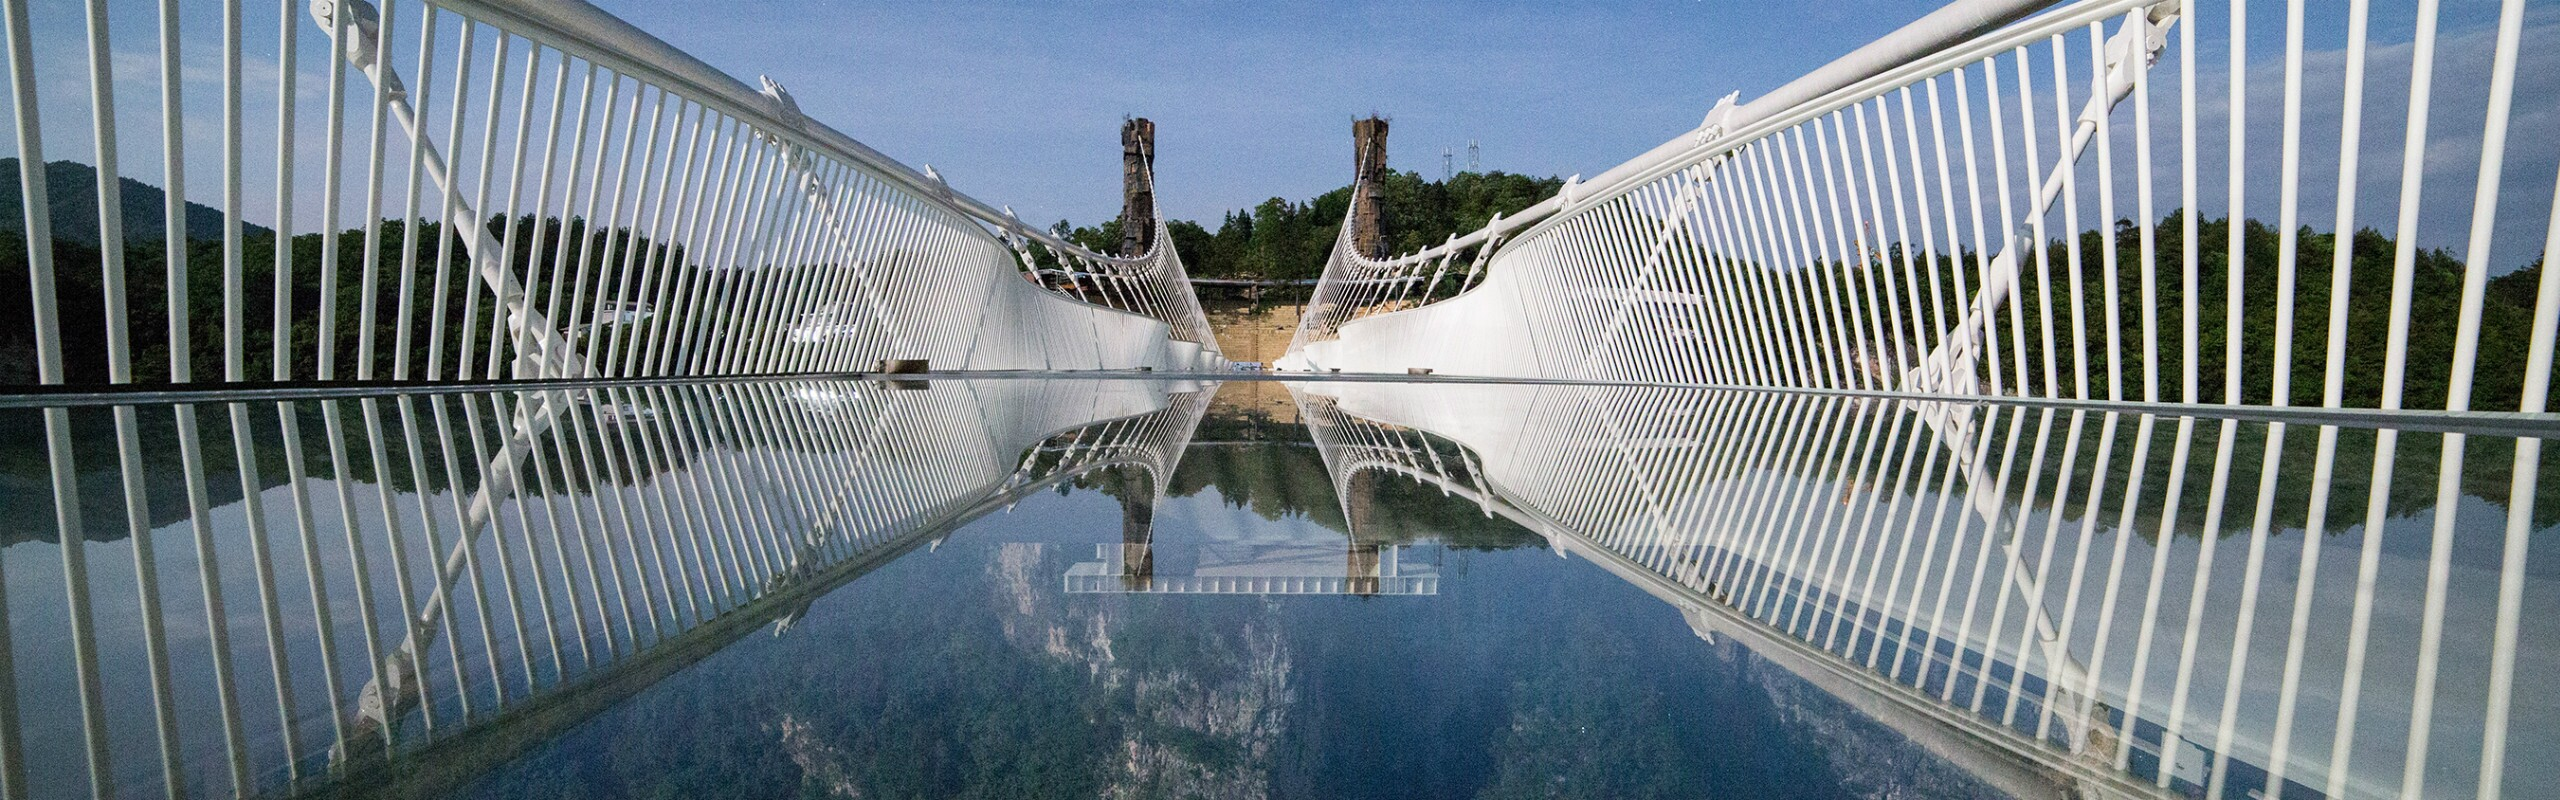 One-Day Glass Bridge & Baofeng Lake Tour